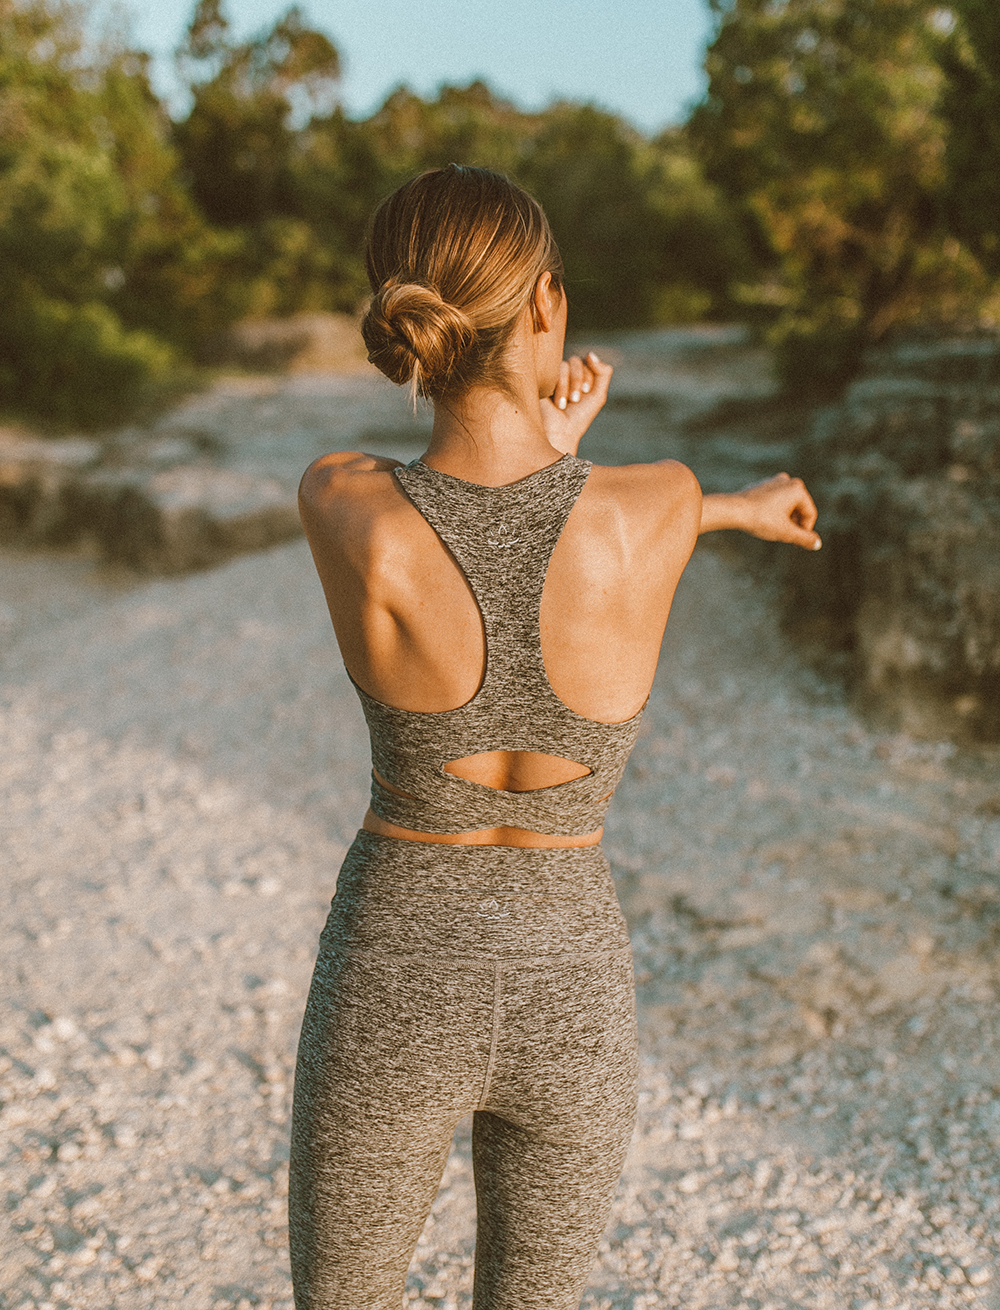 livvyland-blog-olivia-watson-austin-texas-mount-bonnell-yoga-backcountry-beyond-yoga-spacedye-leggings-sports-bra-7